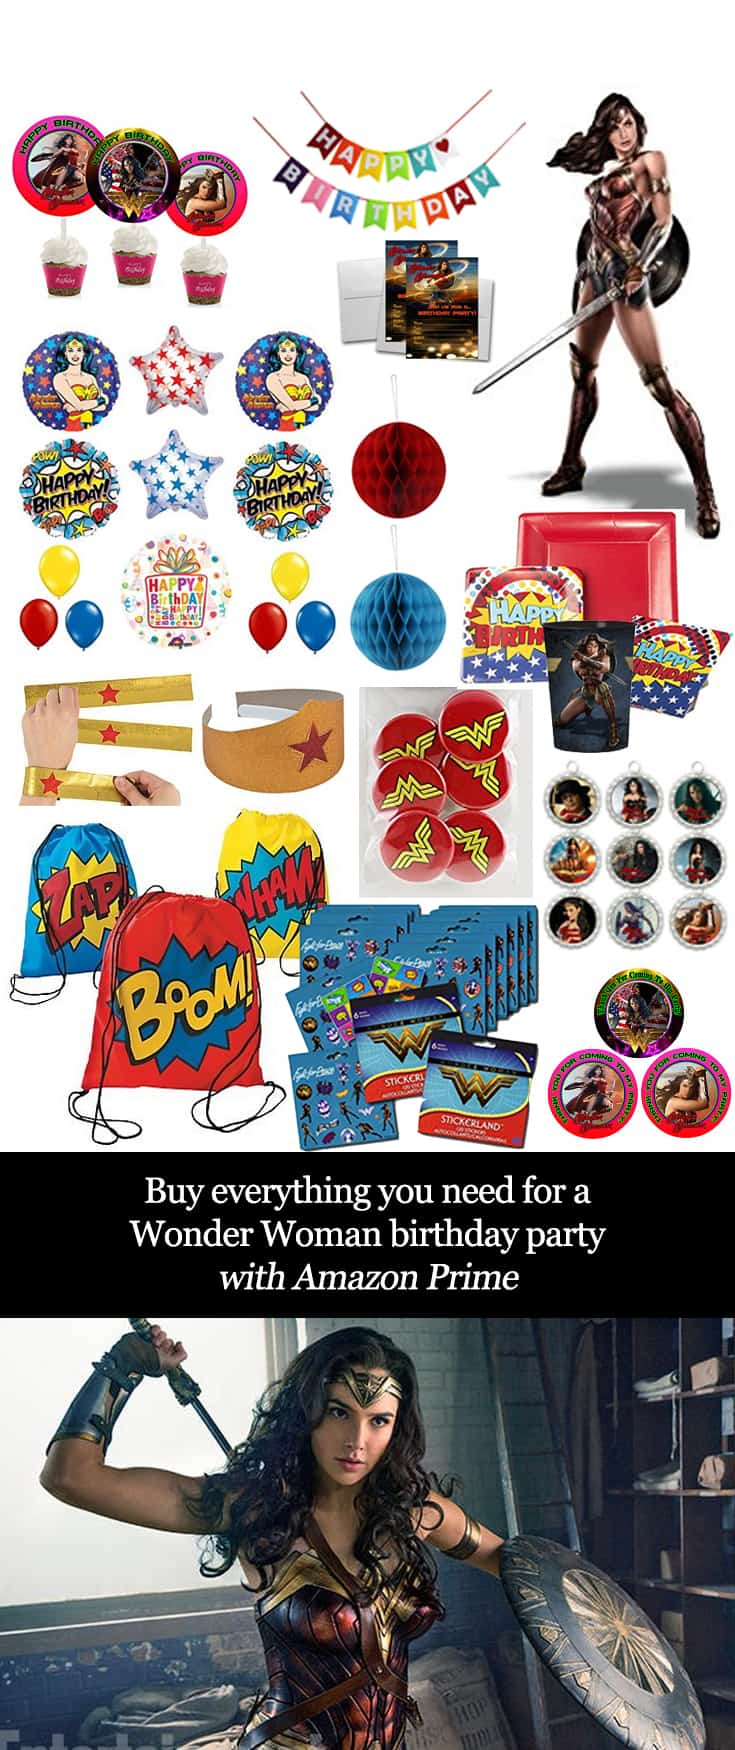 Buy Everything you Need for a Wonder Woman Birthday Party with Amazon Prime